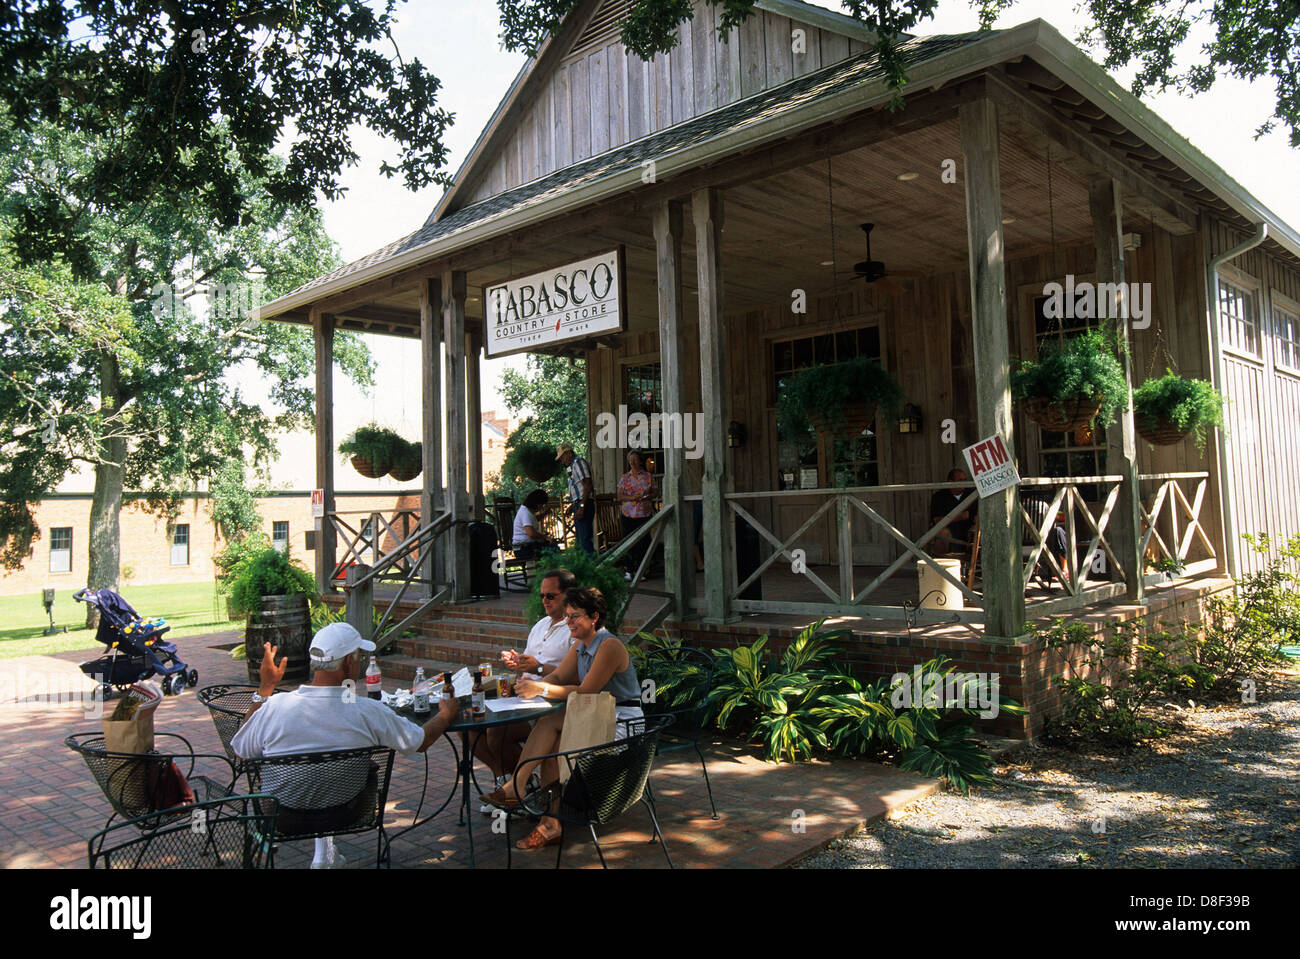 Elk283-4306 Louisiane, Avery Island, Tabasco Country Store Banque D'Images